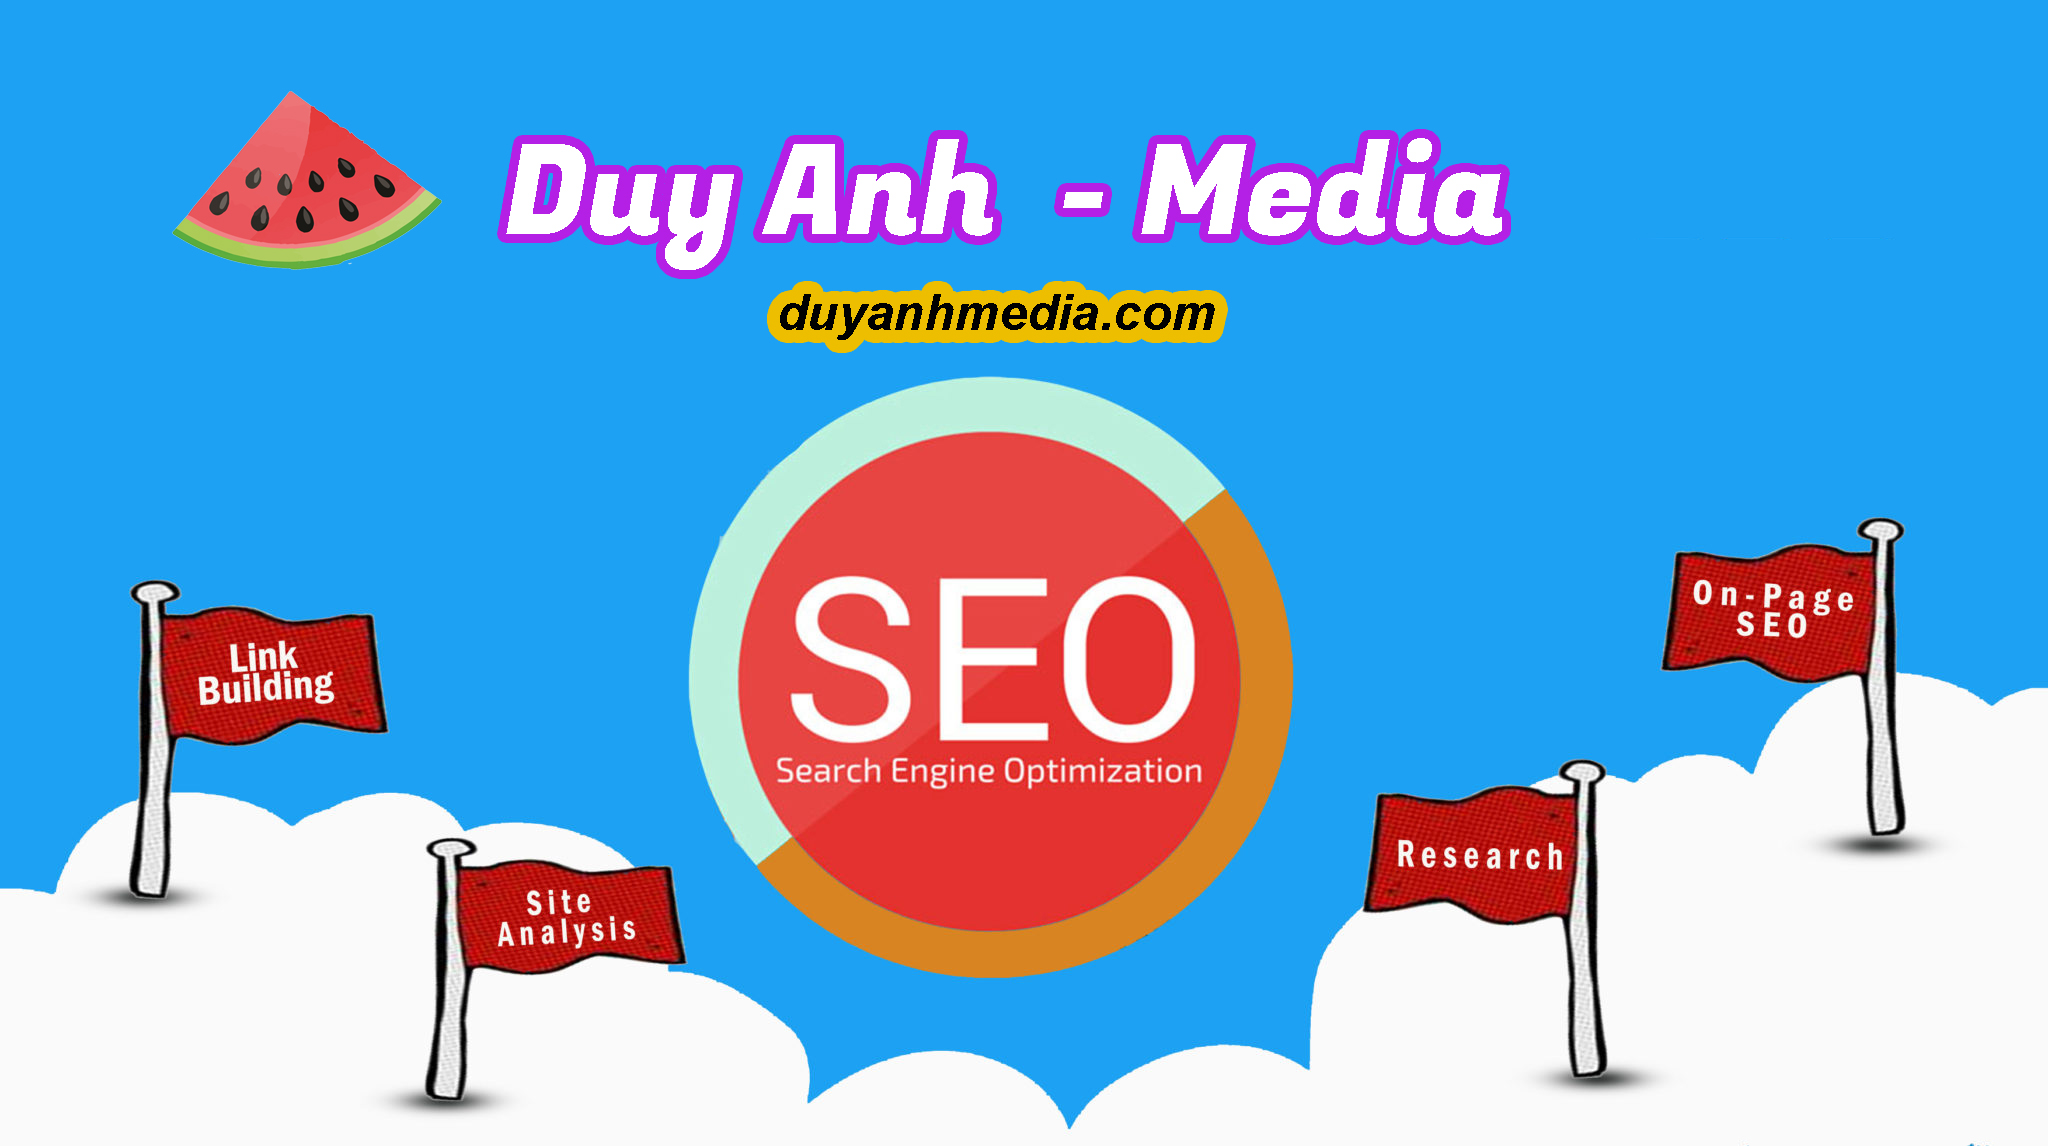 Dịch vụ SEO - Duy Anh Media